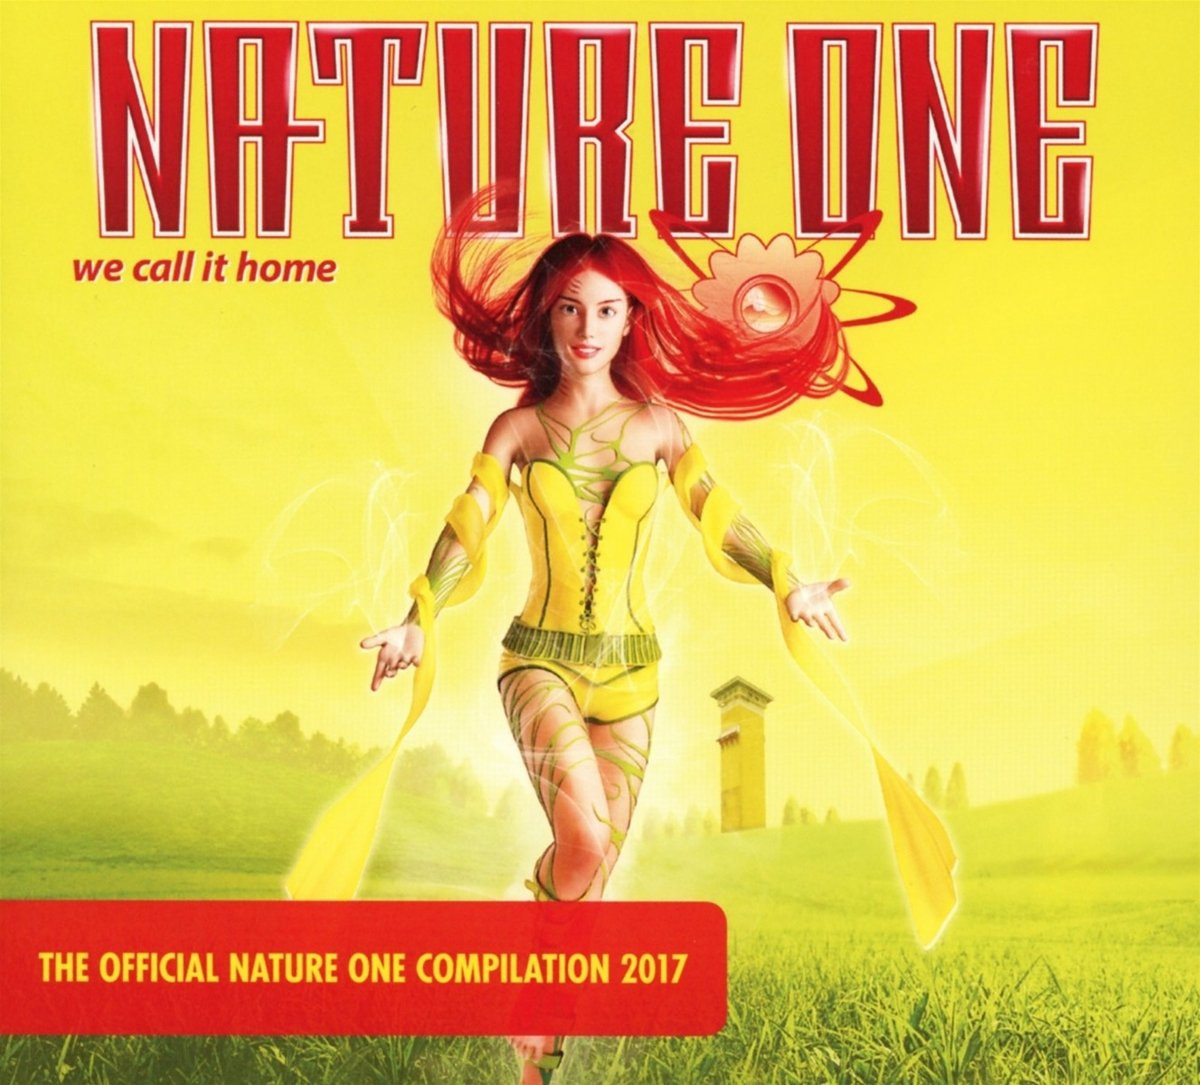 VA - Nature One We Call It Home The Official Nature One Compilation 2017 - 3CD - FLAC - 2017 - VOLDiES Download